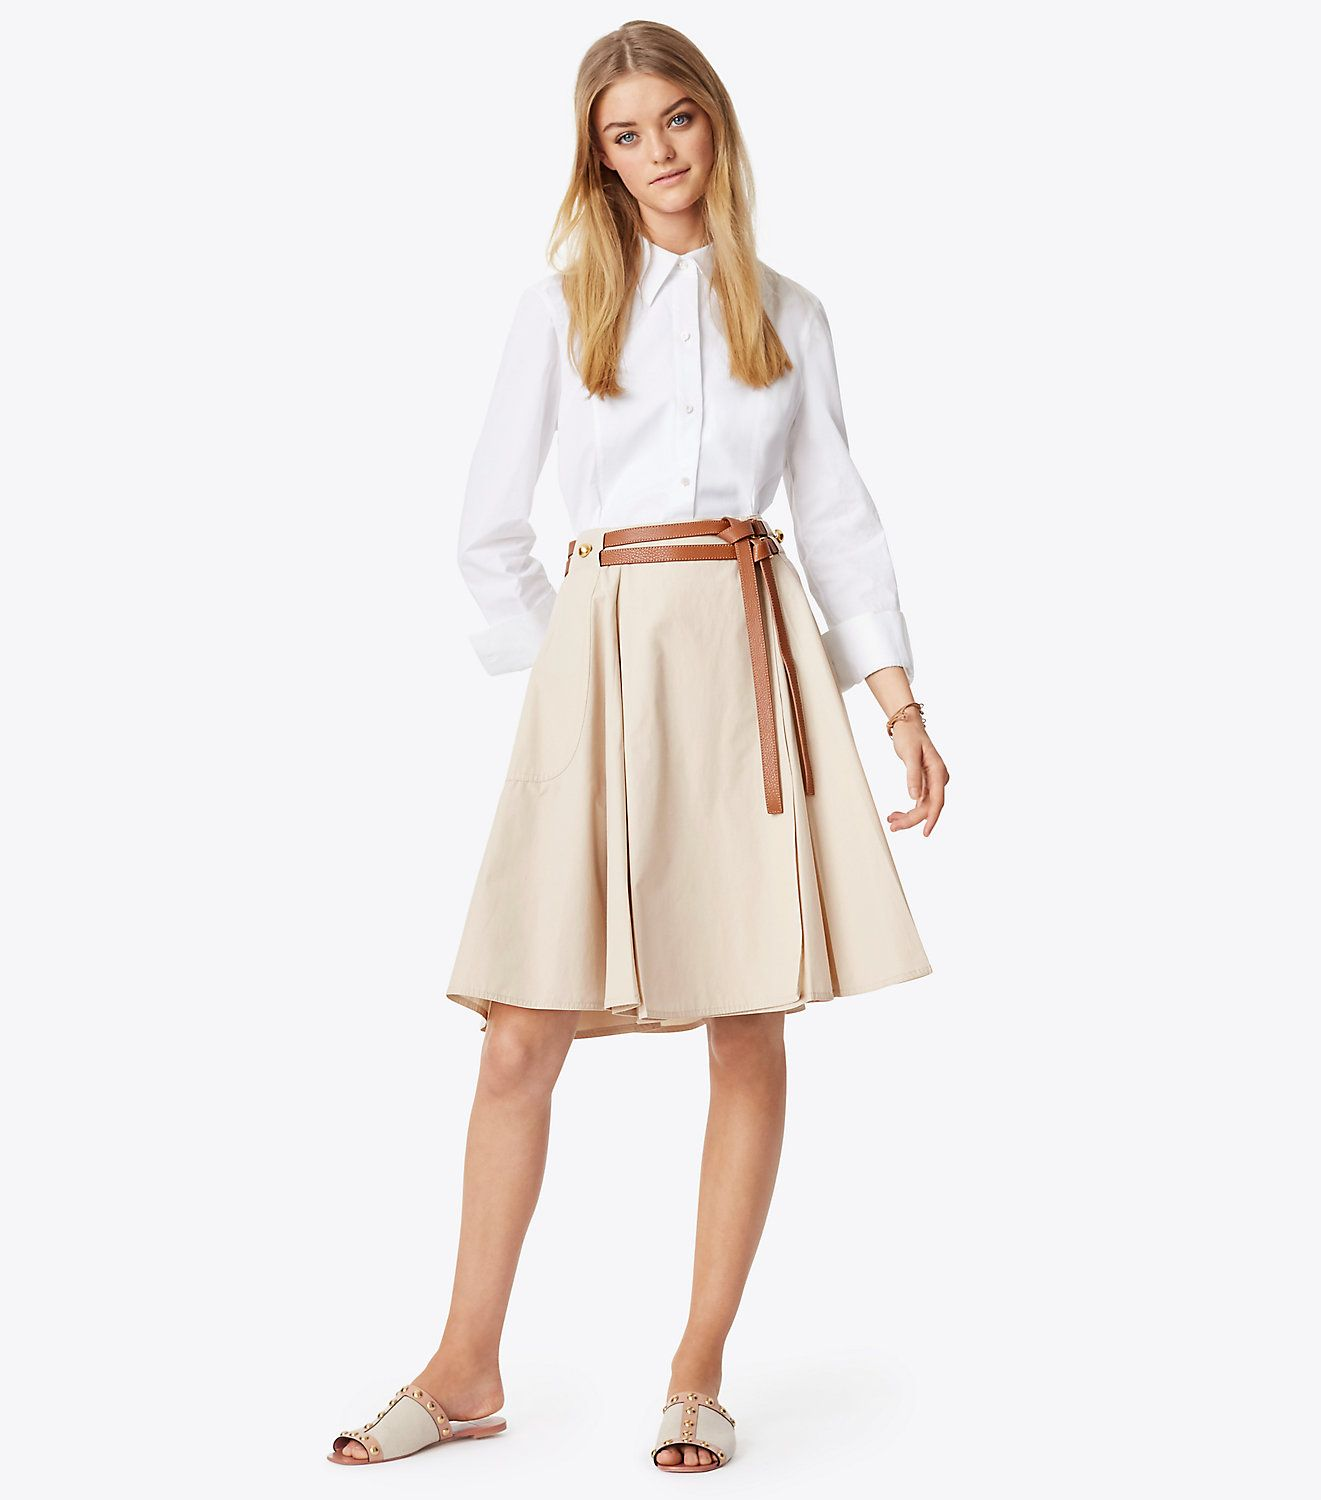 31205c56074 Visit Tory Burch to shop for Betsy Skirt and more Womens The Essentials.  Find designer shoes